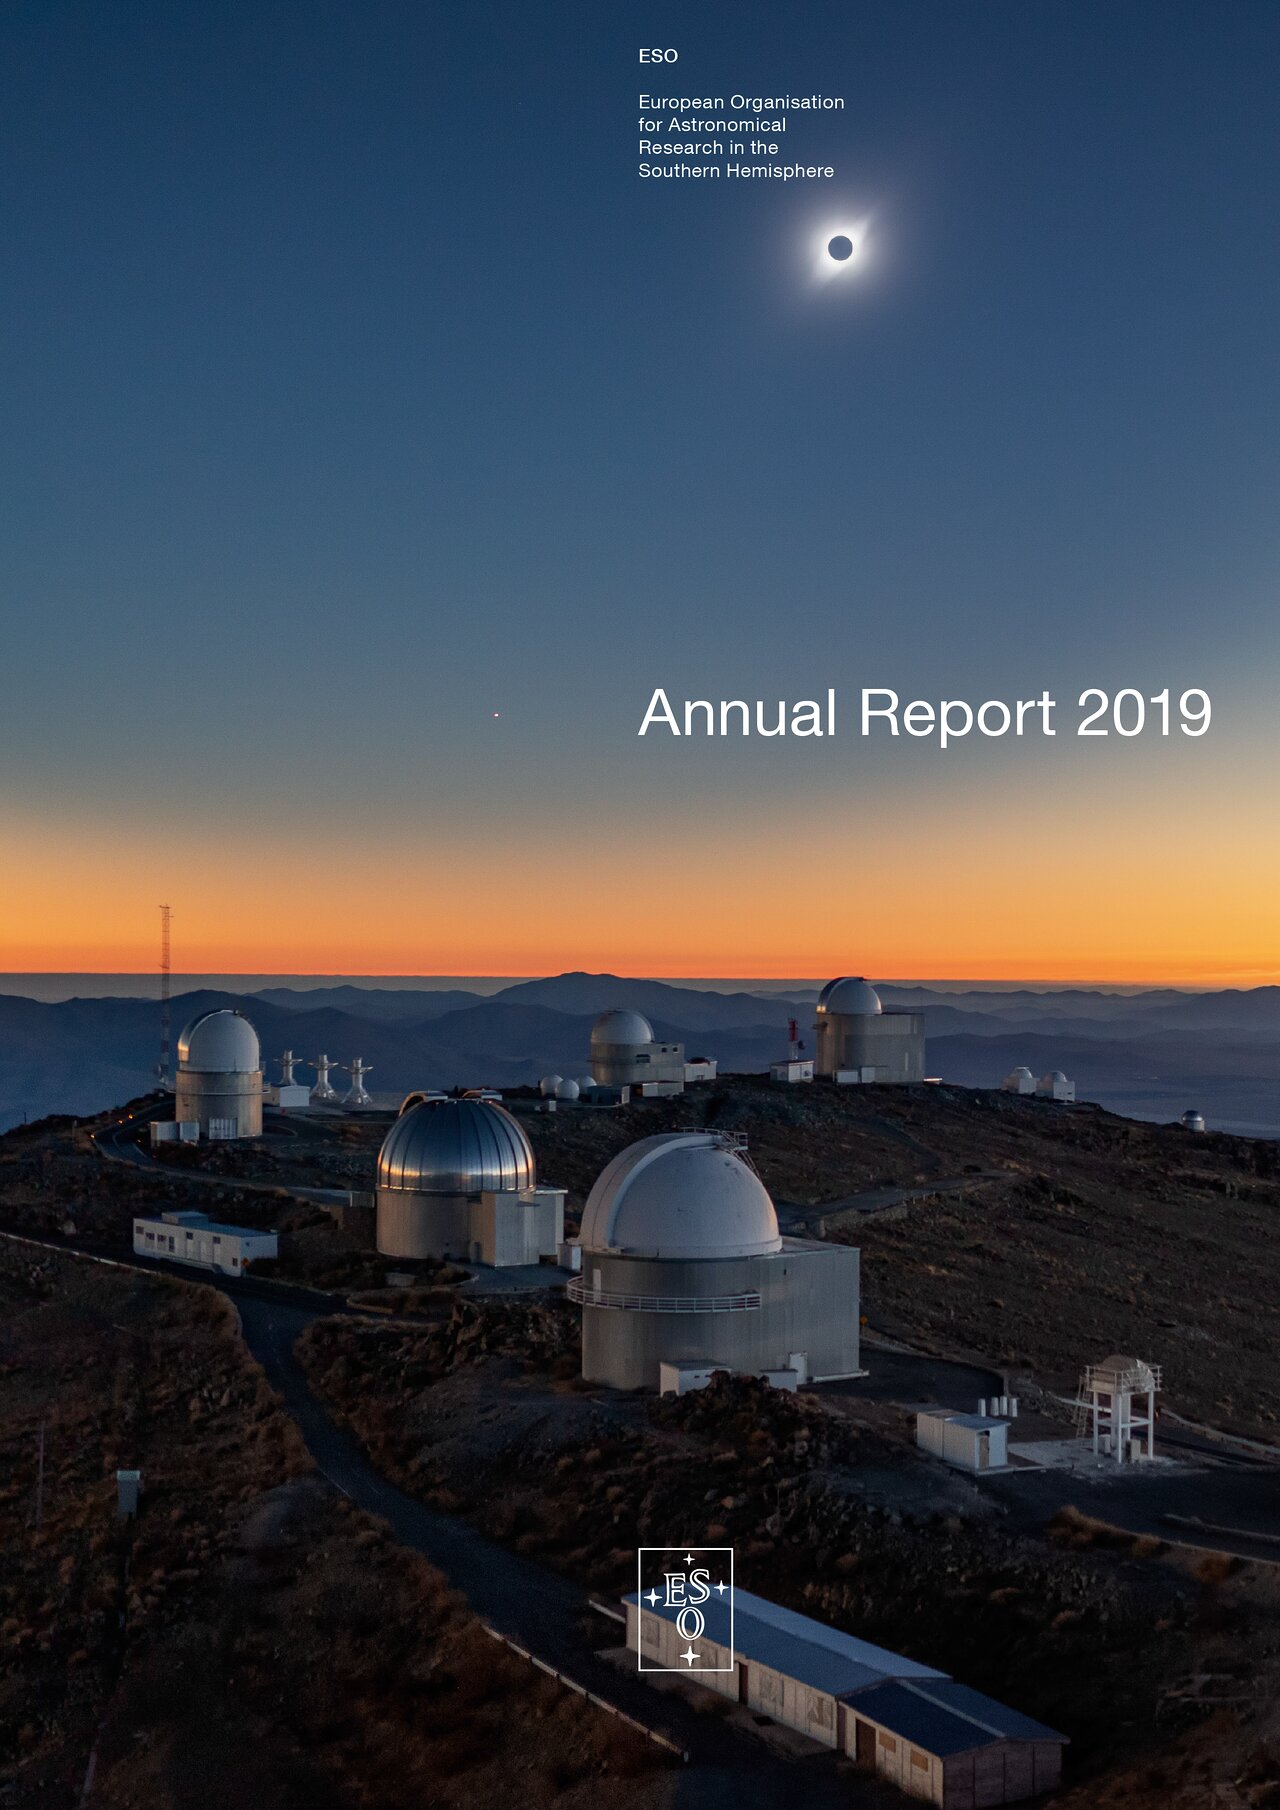 eso-annual-report-2019